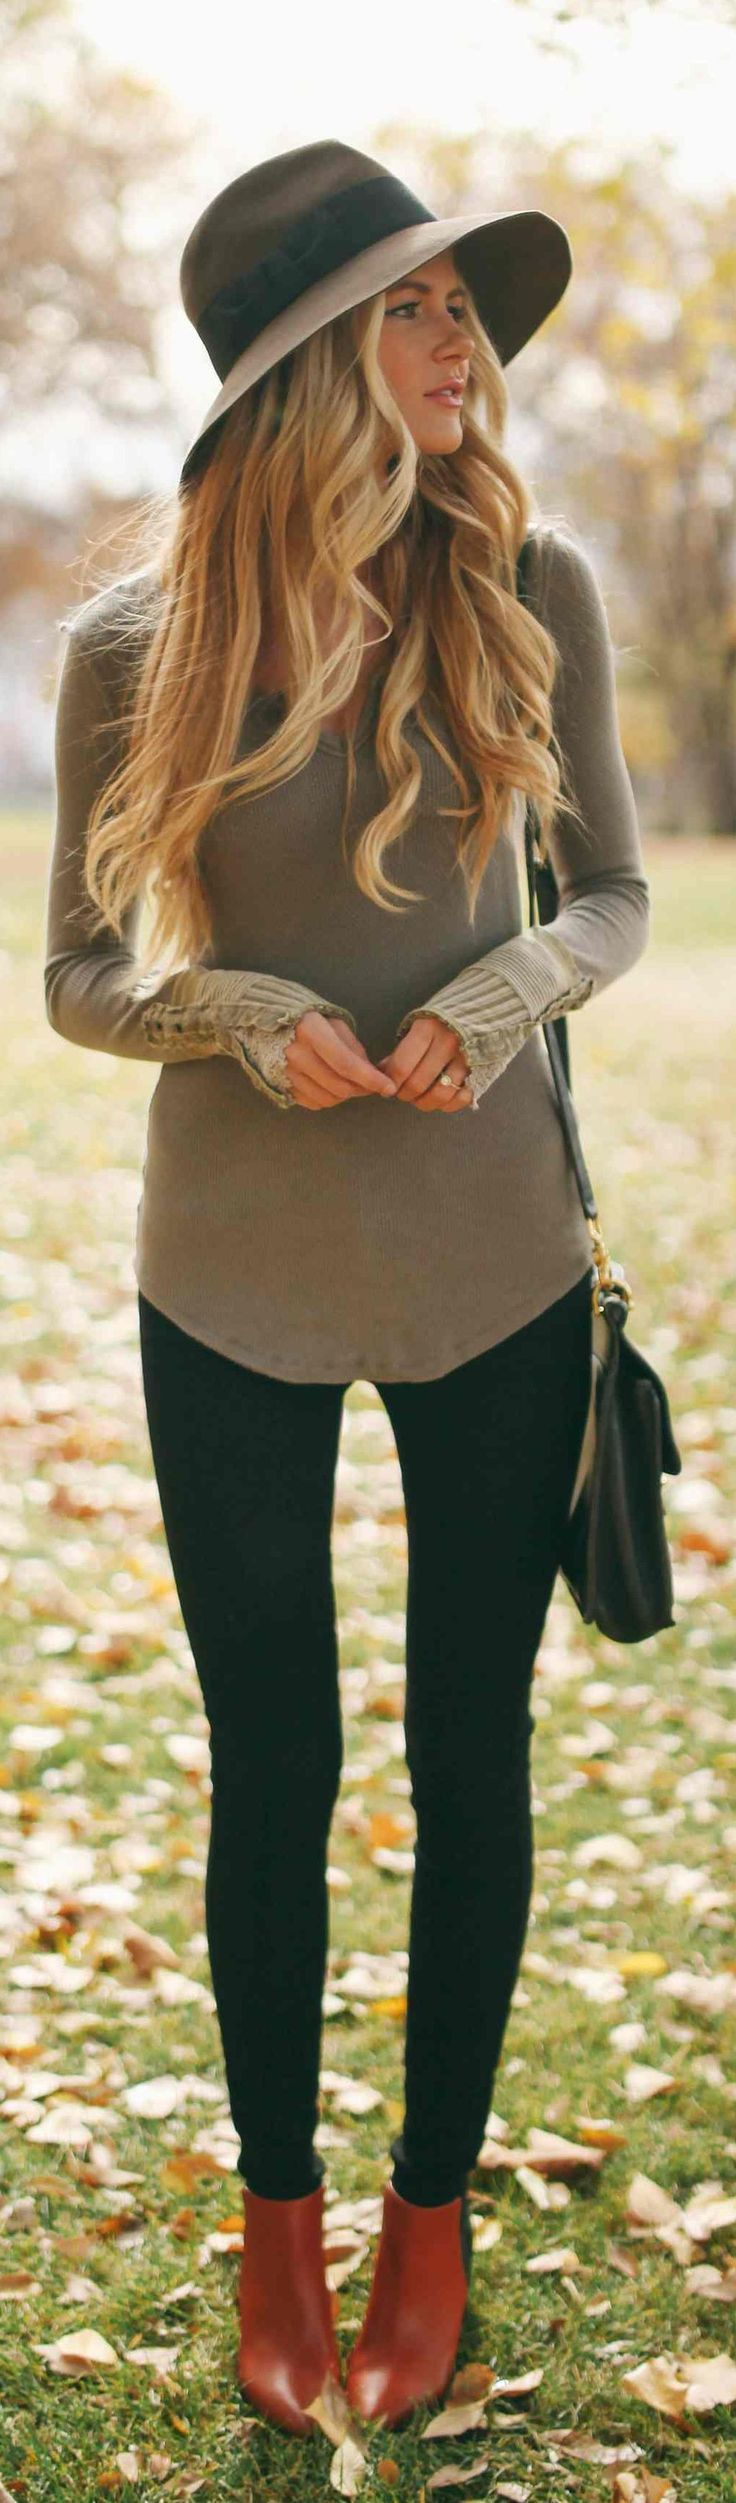 Modern Country Style: Modern Country Style Fashion For Autumn / Fall Click through for details. I like the top and the hat